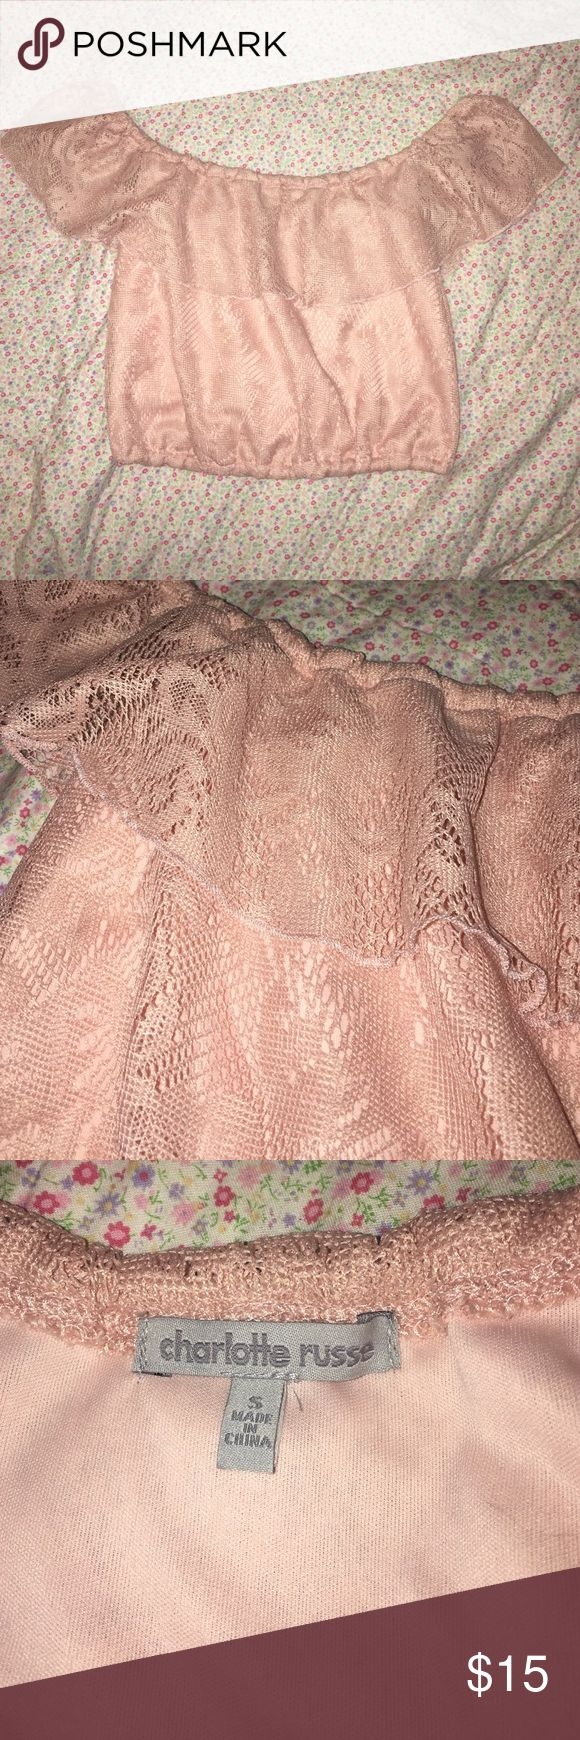 New pink lace Bardot crop top New without tags NWOT Charlotte Russe dusty rose colour pink lace off the shoulder (or on) ruffle crop top. Elastic at bottom. Bought but never wore so no flaws! So girly and flirty tags: kawaii nymphet Lolita TopShop forever 21 Charlotte Russe Tops Crop Tops